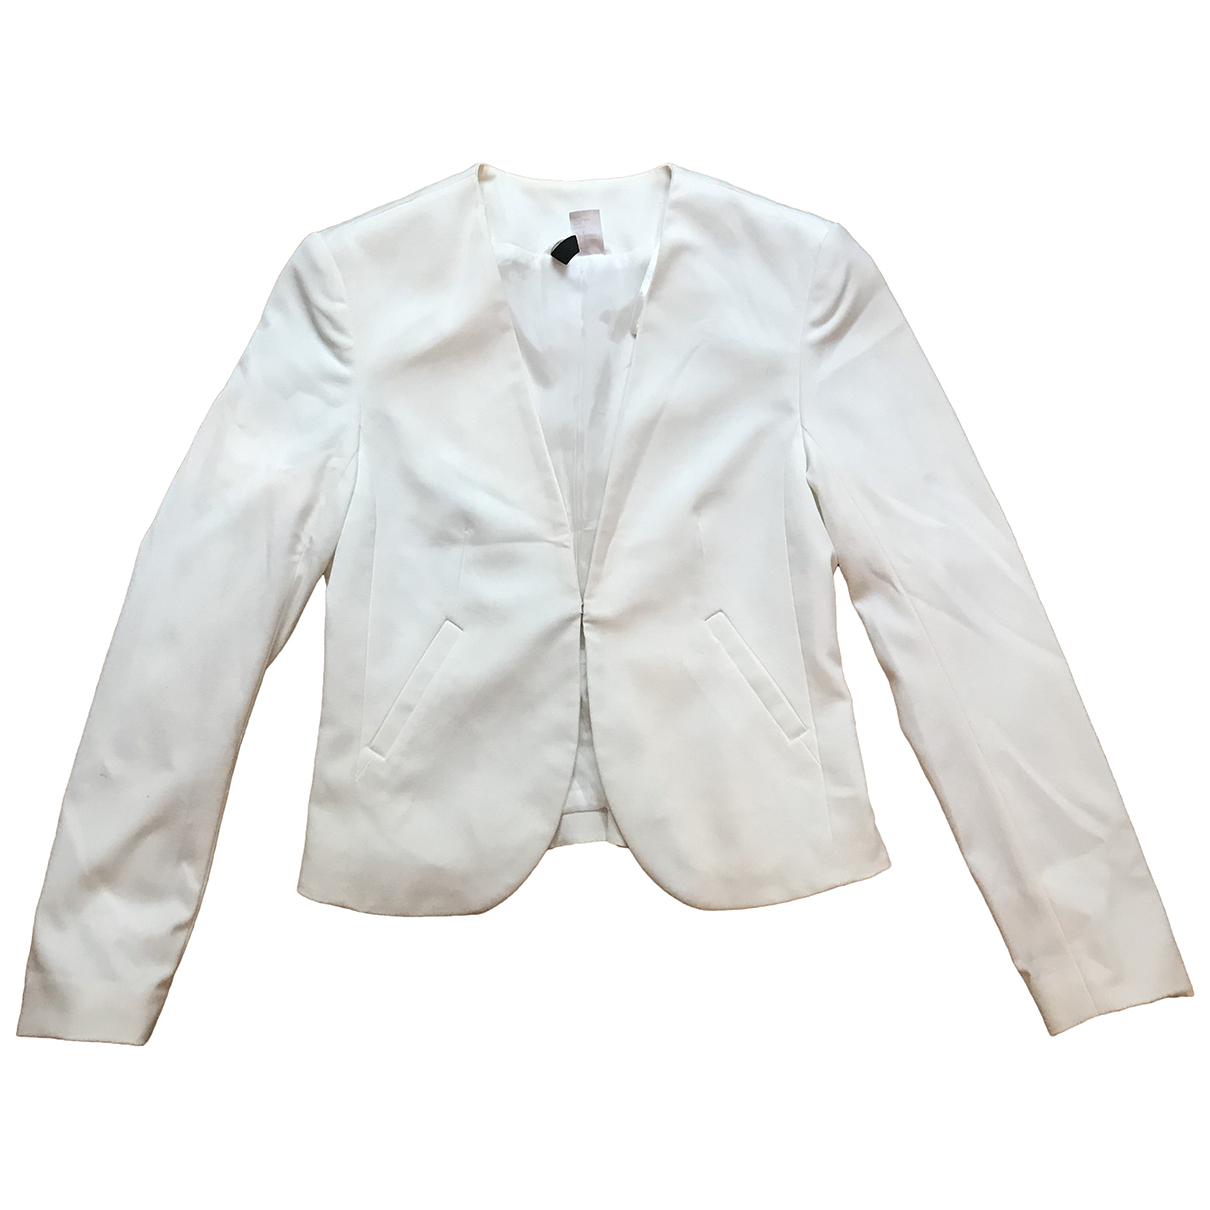 H&m Studio N White jacket for Women 4 US